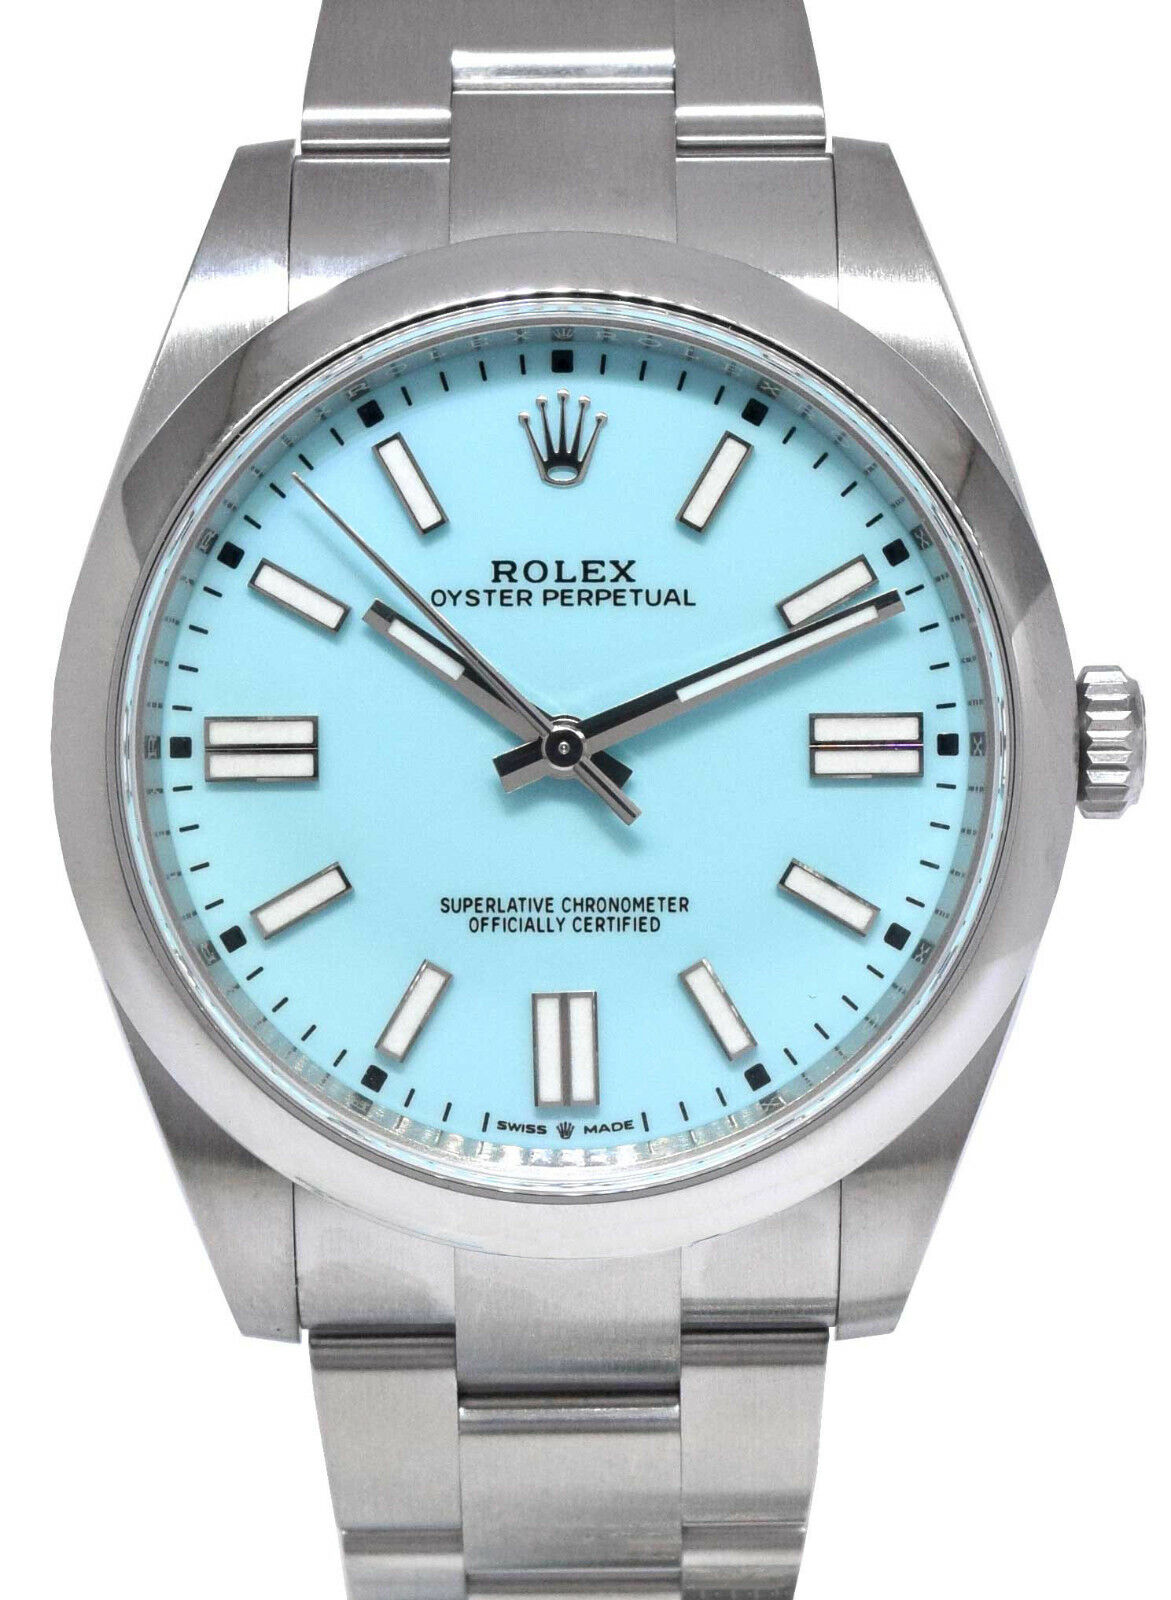 NEW Rolex Oyster Perpetual Steel Turquoise Dial 41mm Watch BoxPapers 124300